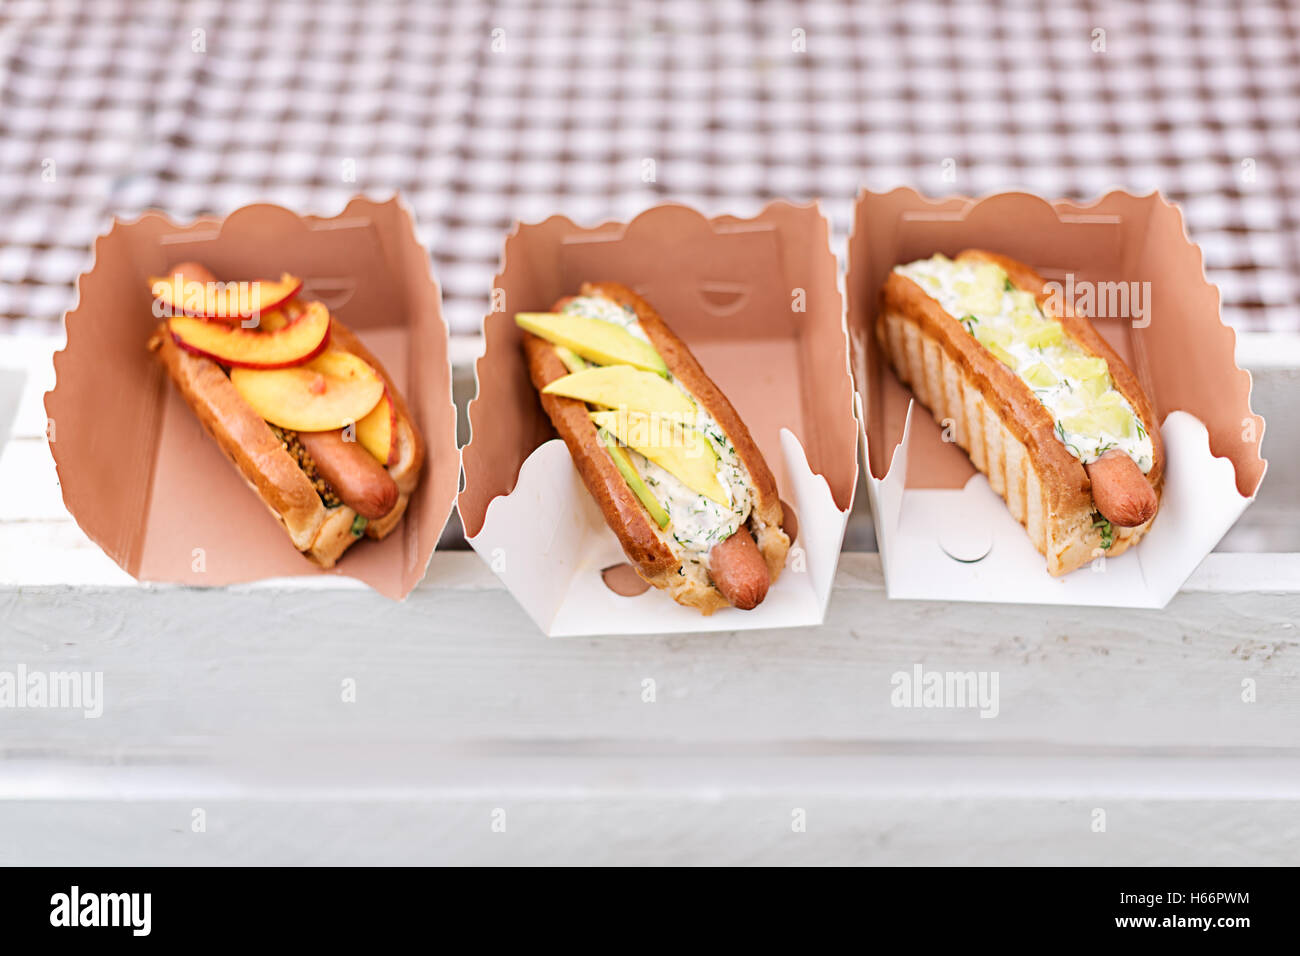 Street food. Special hot dogs with fruits. - Stock Image